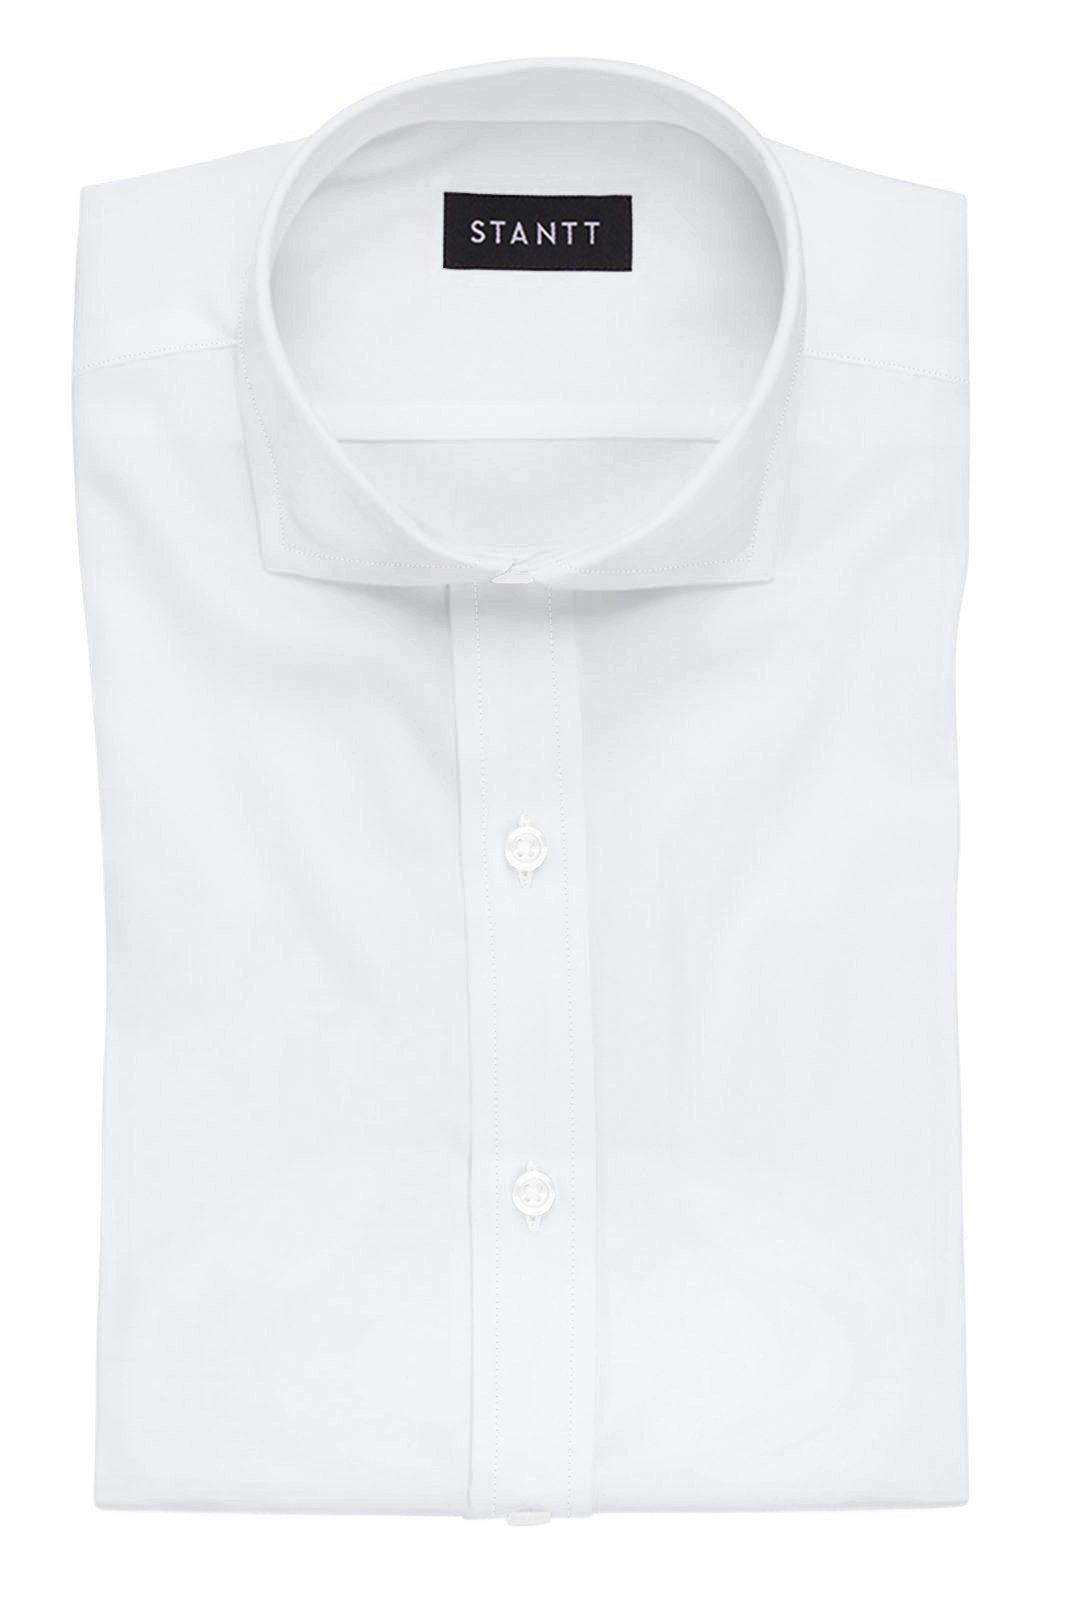 Fine White Poplin: Cutaway Collar, French Cuff